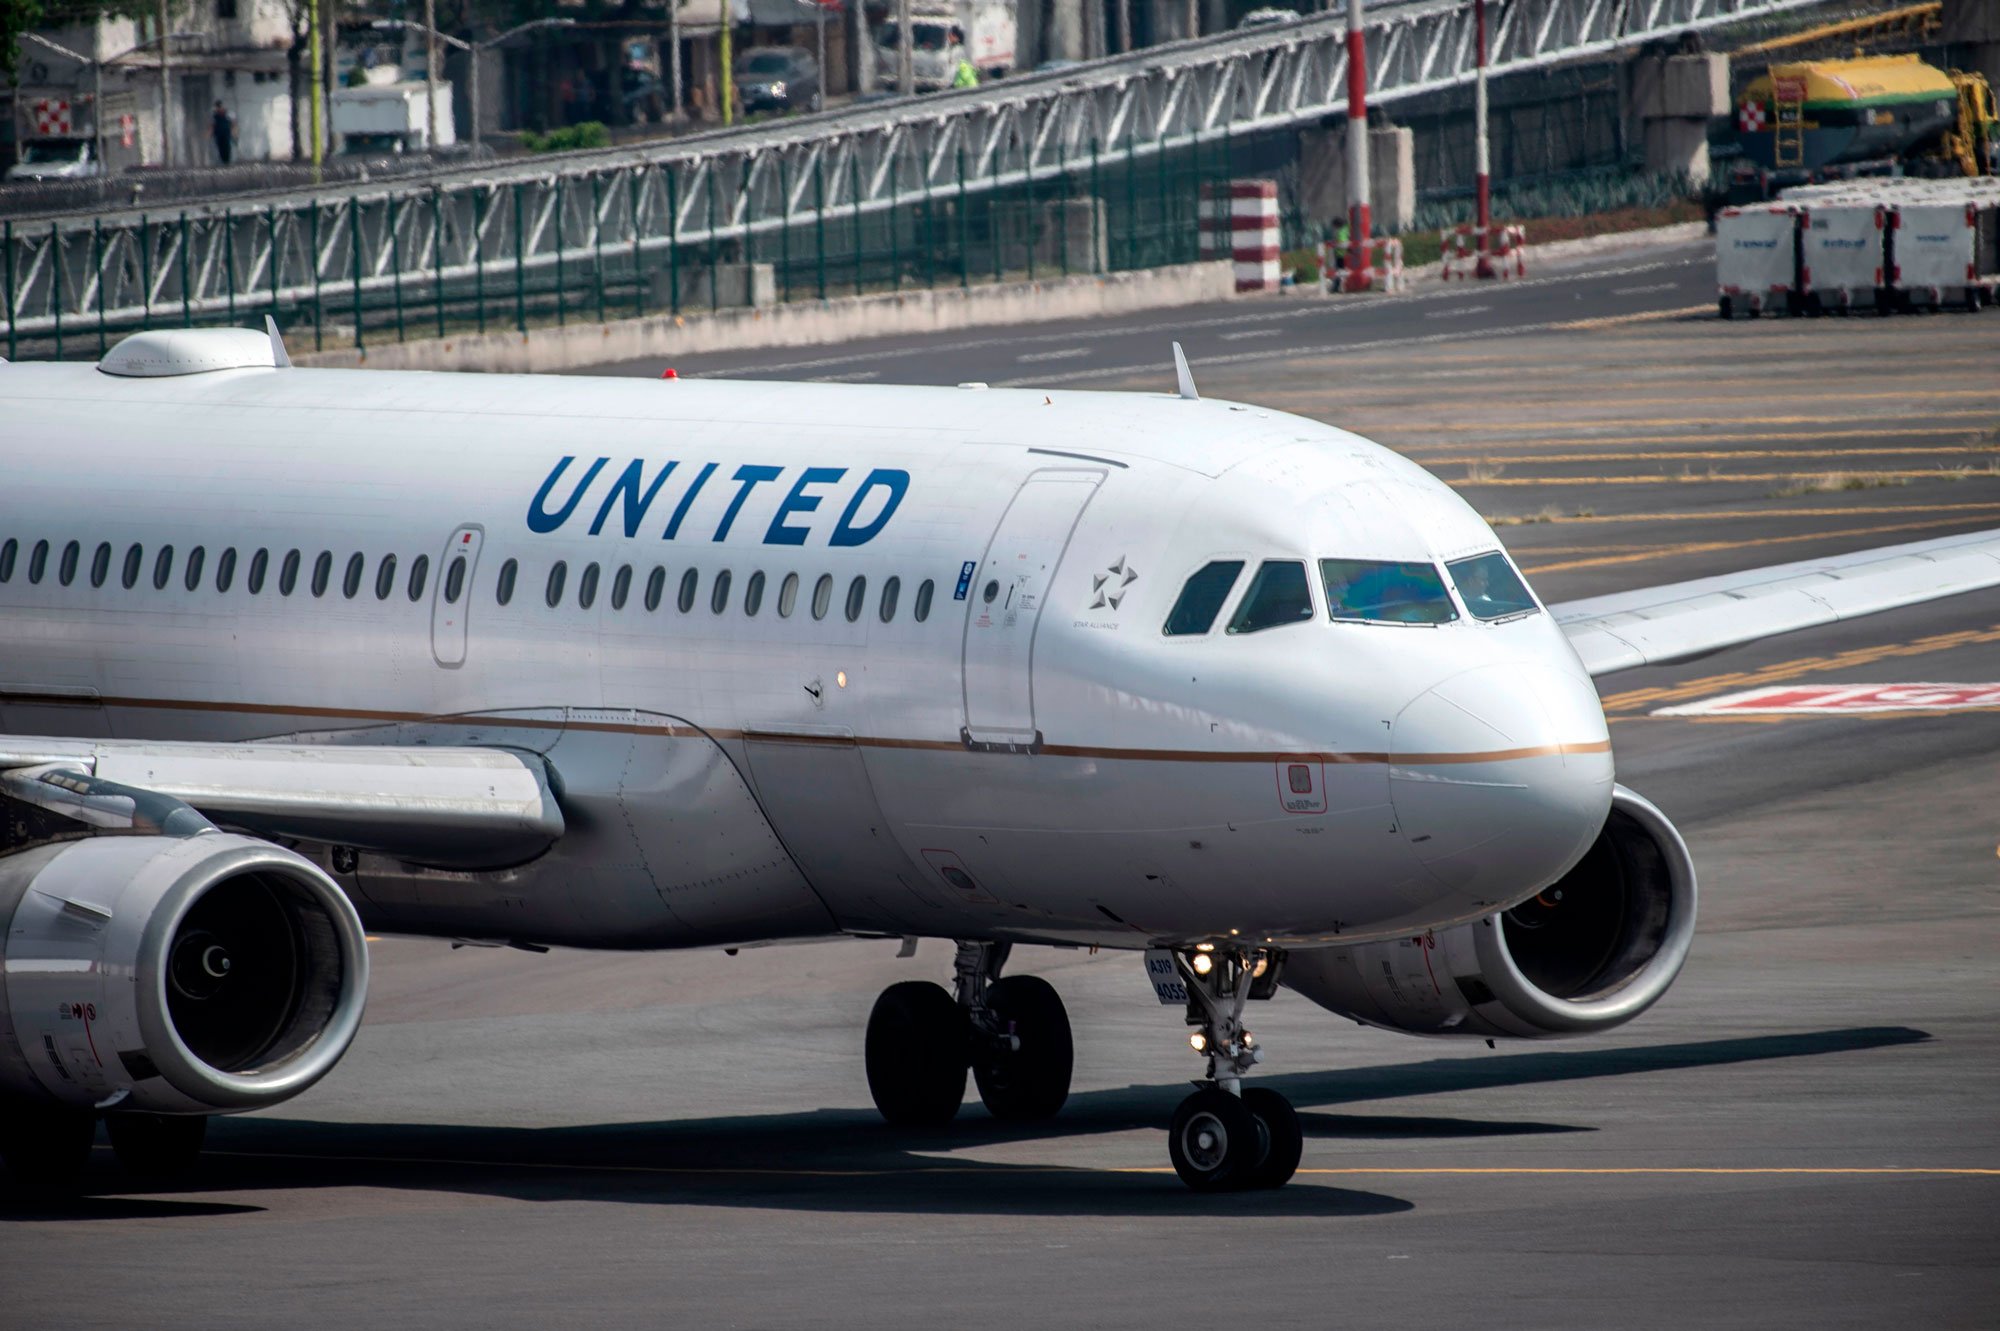 A United Airlines plane prepares to take off at the Benito Juarez International airport in Mexico City, on March 20, 2020. - International flights keep operating in Mexico, unlike most other countries which have closed airports due to the outbreak of the new coronavirus, COVID-19. (Photo by PEDRO PARDO / AFP) (Photo by PEDRO PARDO/AFP via Getty Images)